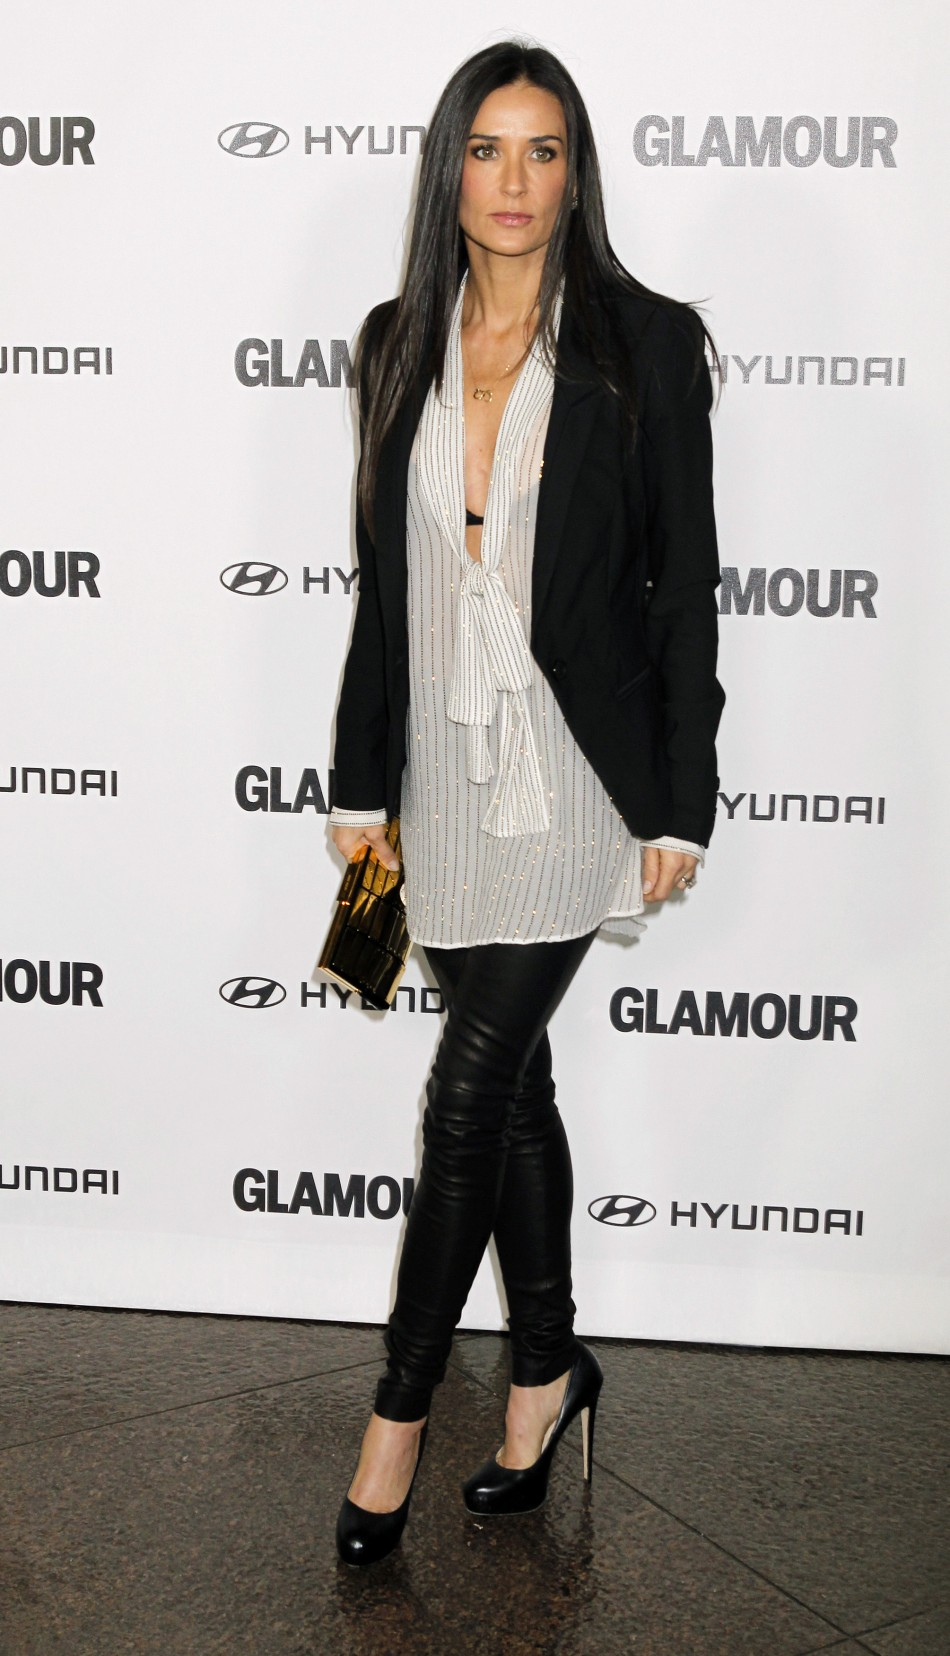 Actress Demi Moore arrives at the Glamour Reel Moments event in Los Angeles